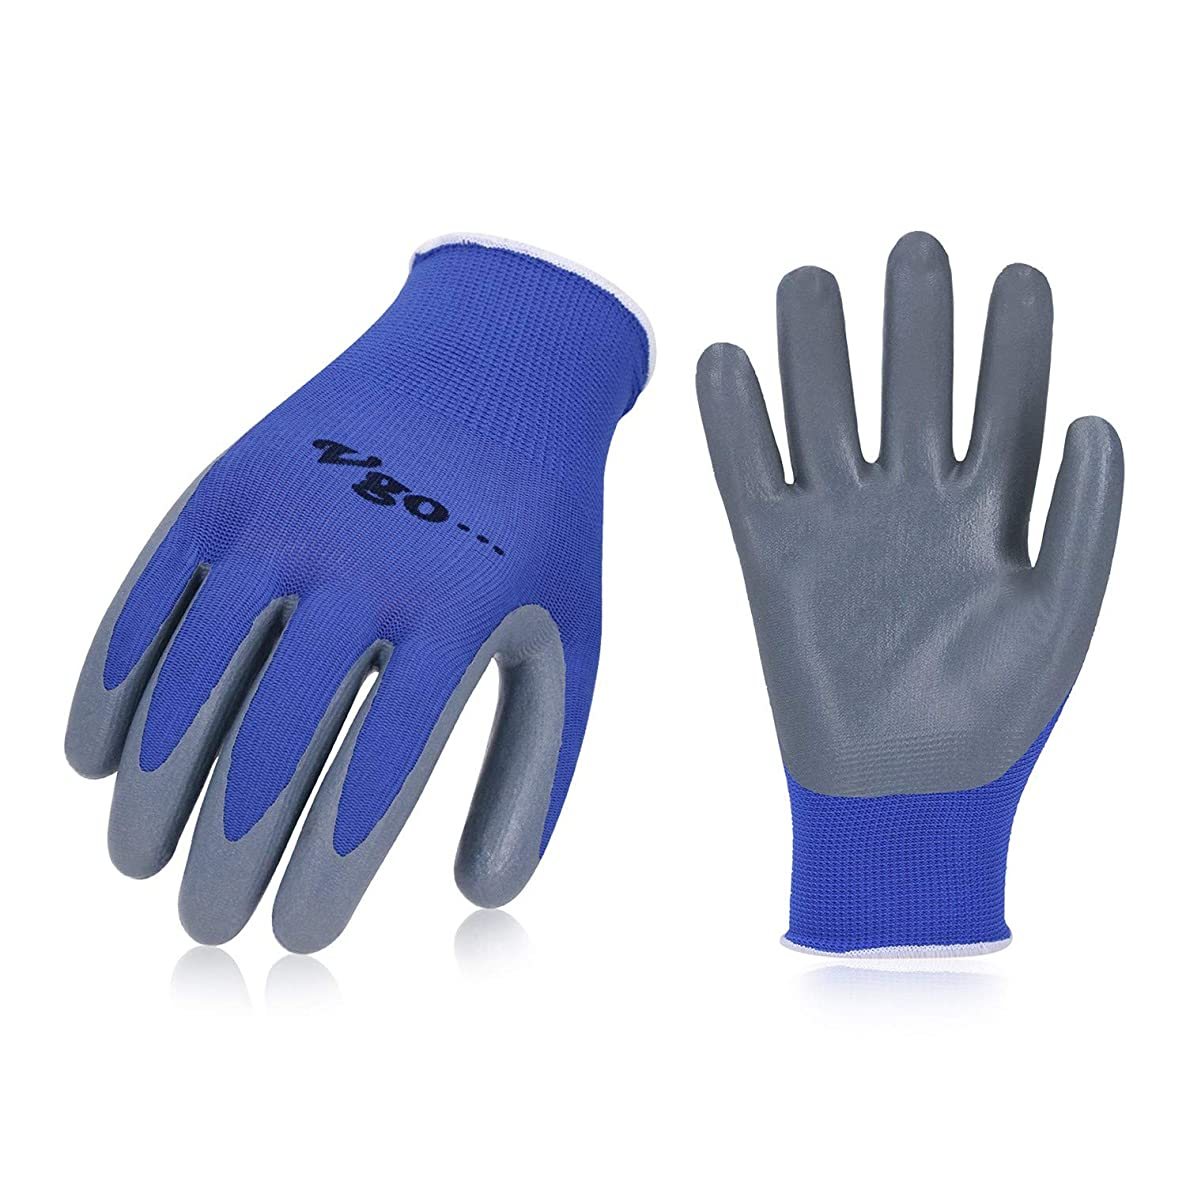 Vgo 10Pairs Nitrile Coating Gardening and Work Gloves (Size S, Blue, NT2110)